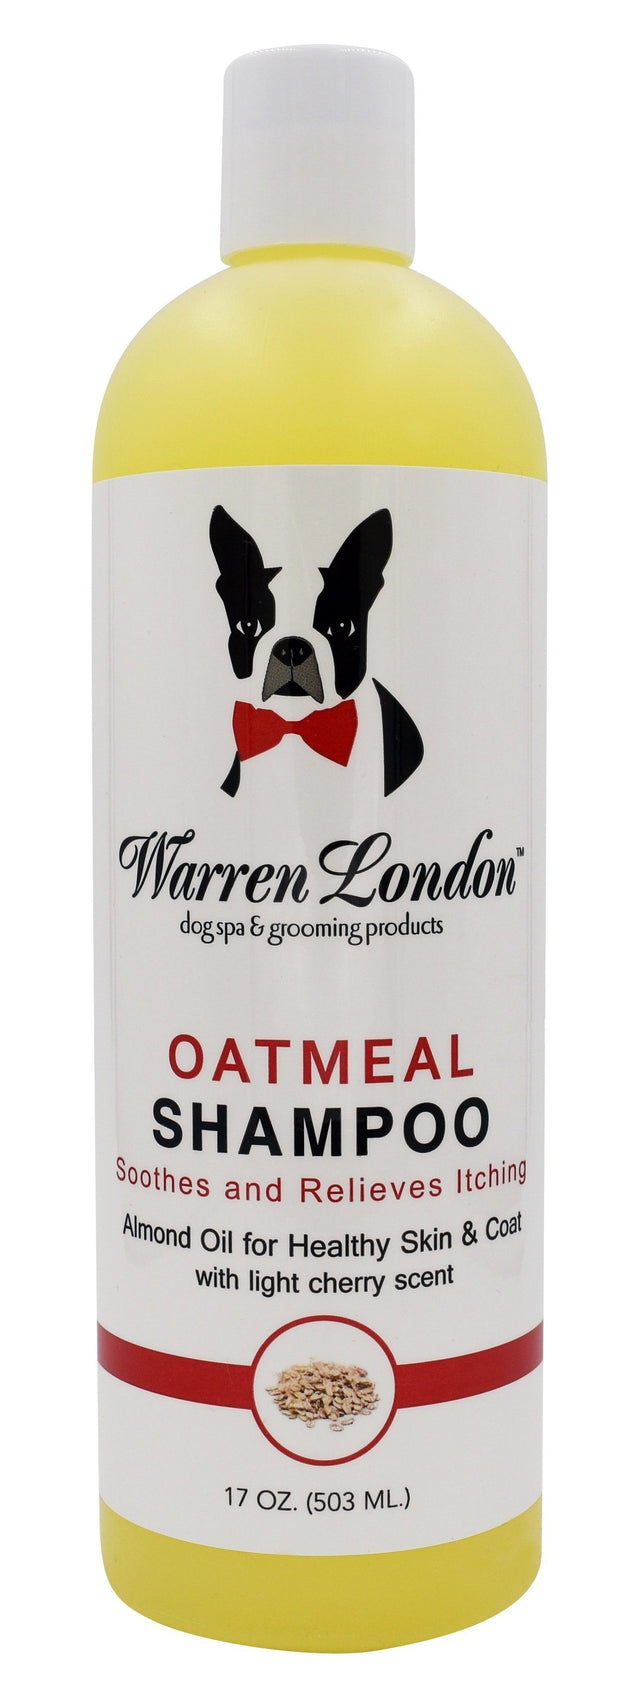 Oatmeal Shampoo - For Dogs With Itchy Skin and Coats - Cherry Scented 1